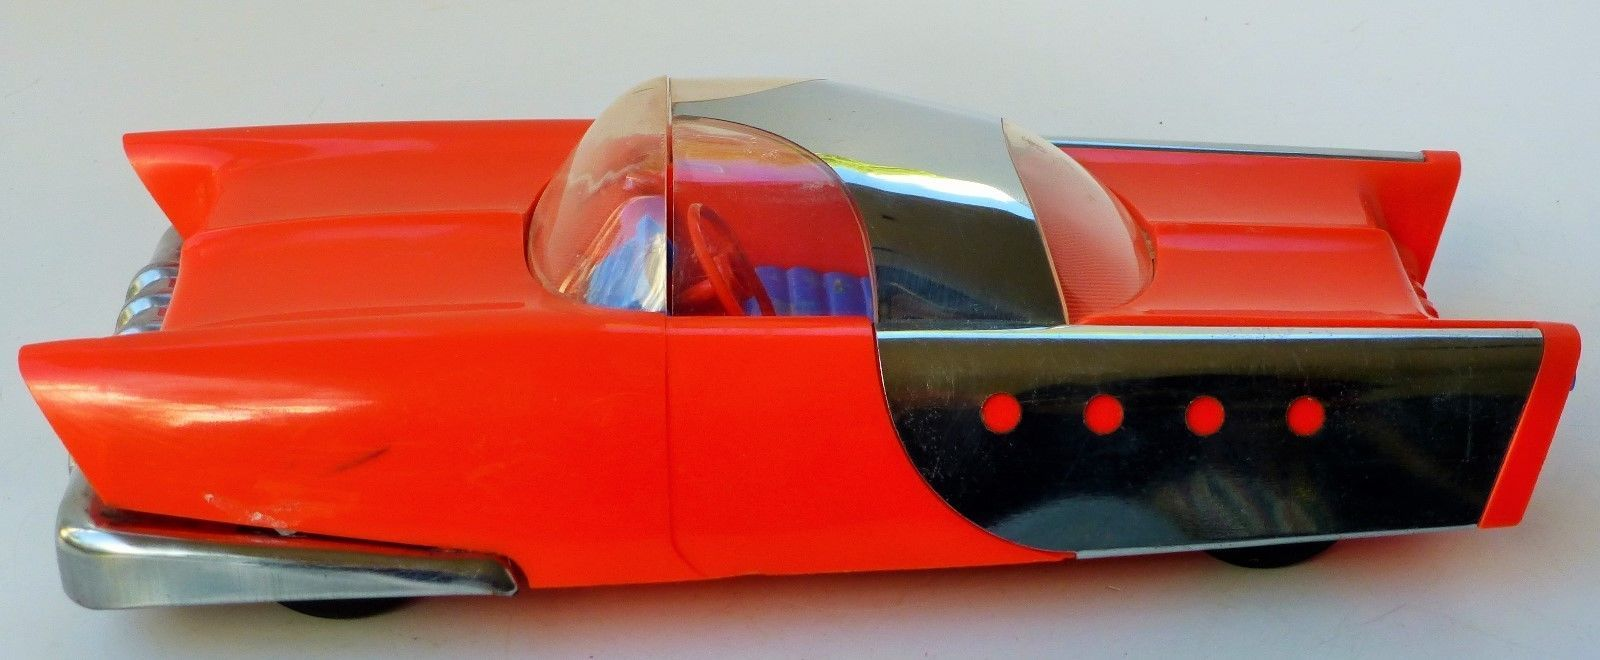 """1950's RARE Find """"Bomber Bubble"""" The Mattel Dream Car Friction with Box 10"""" 